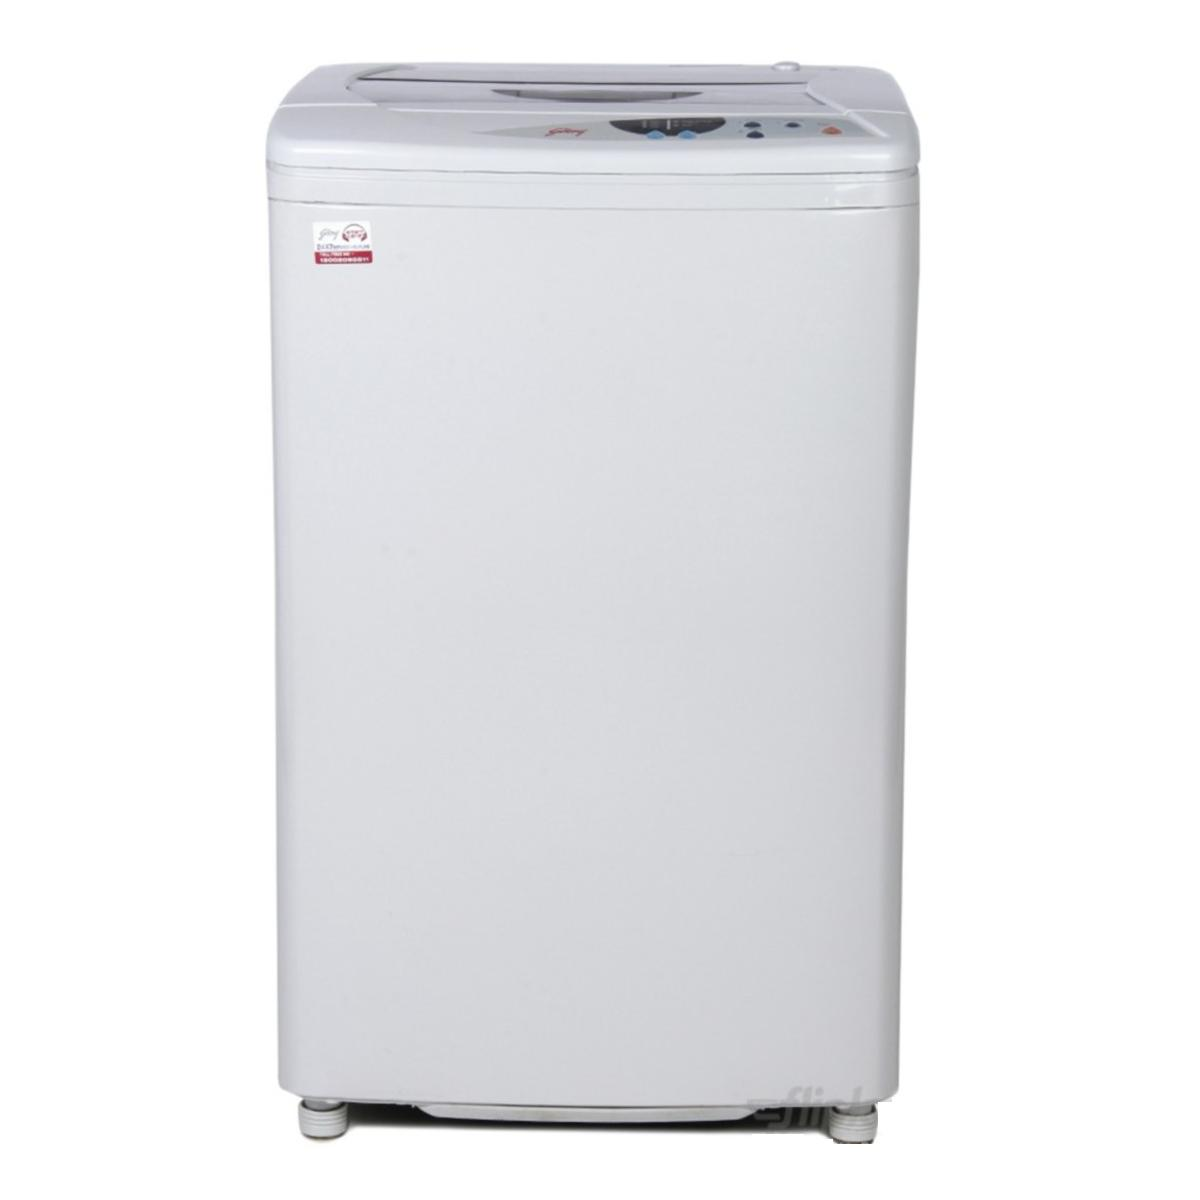 Godrej 6kg Fully Automatic Washing Machine WT 600 C Image